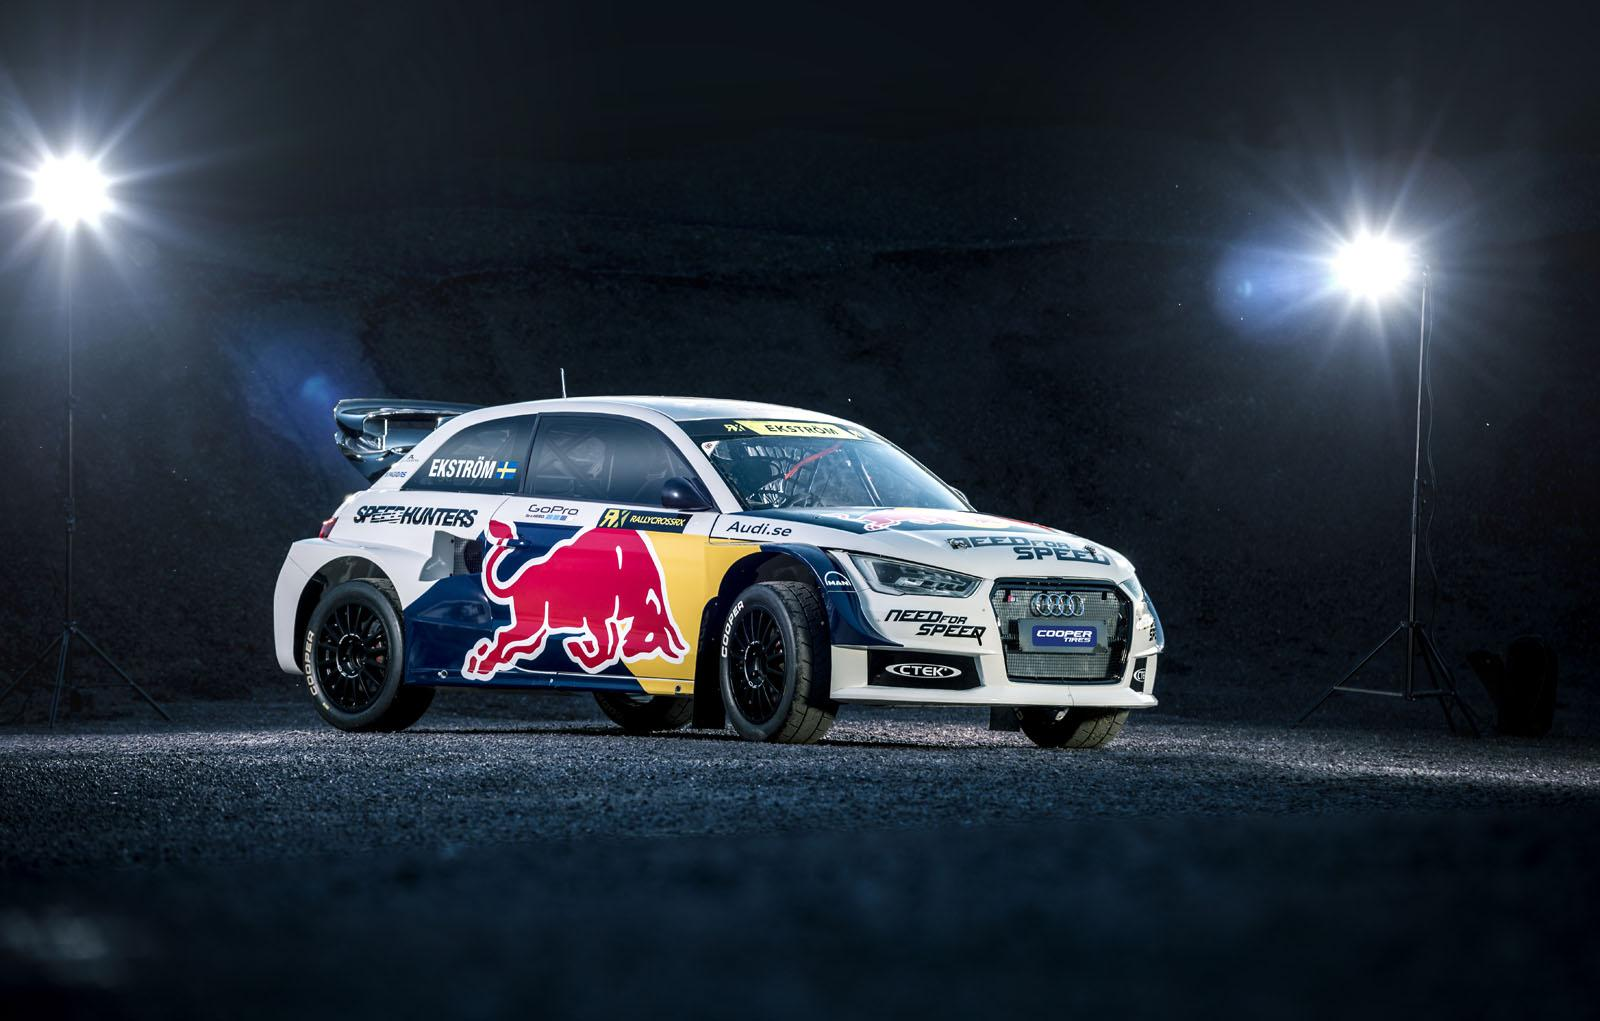 European Auto Parts >> Audi S1 Ready to Rallycross in Red Bull Livery - autoevolution